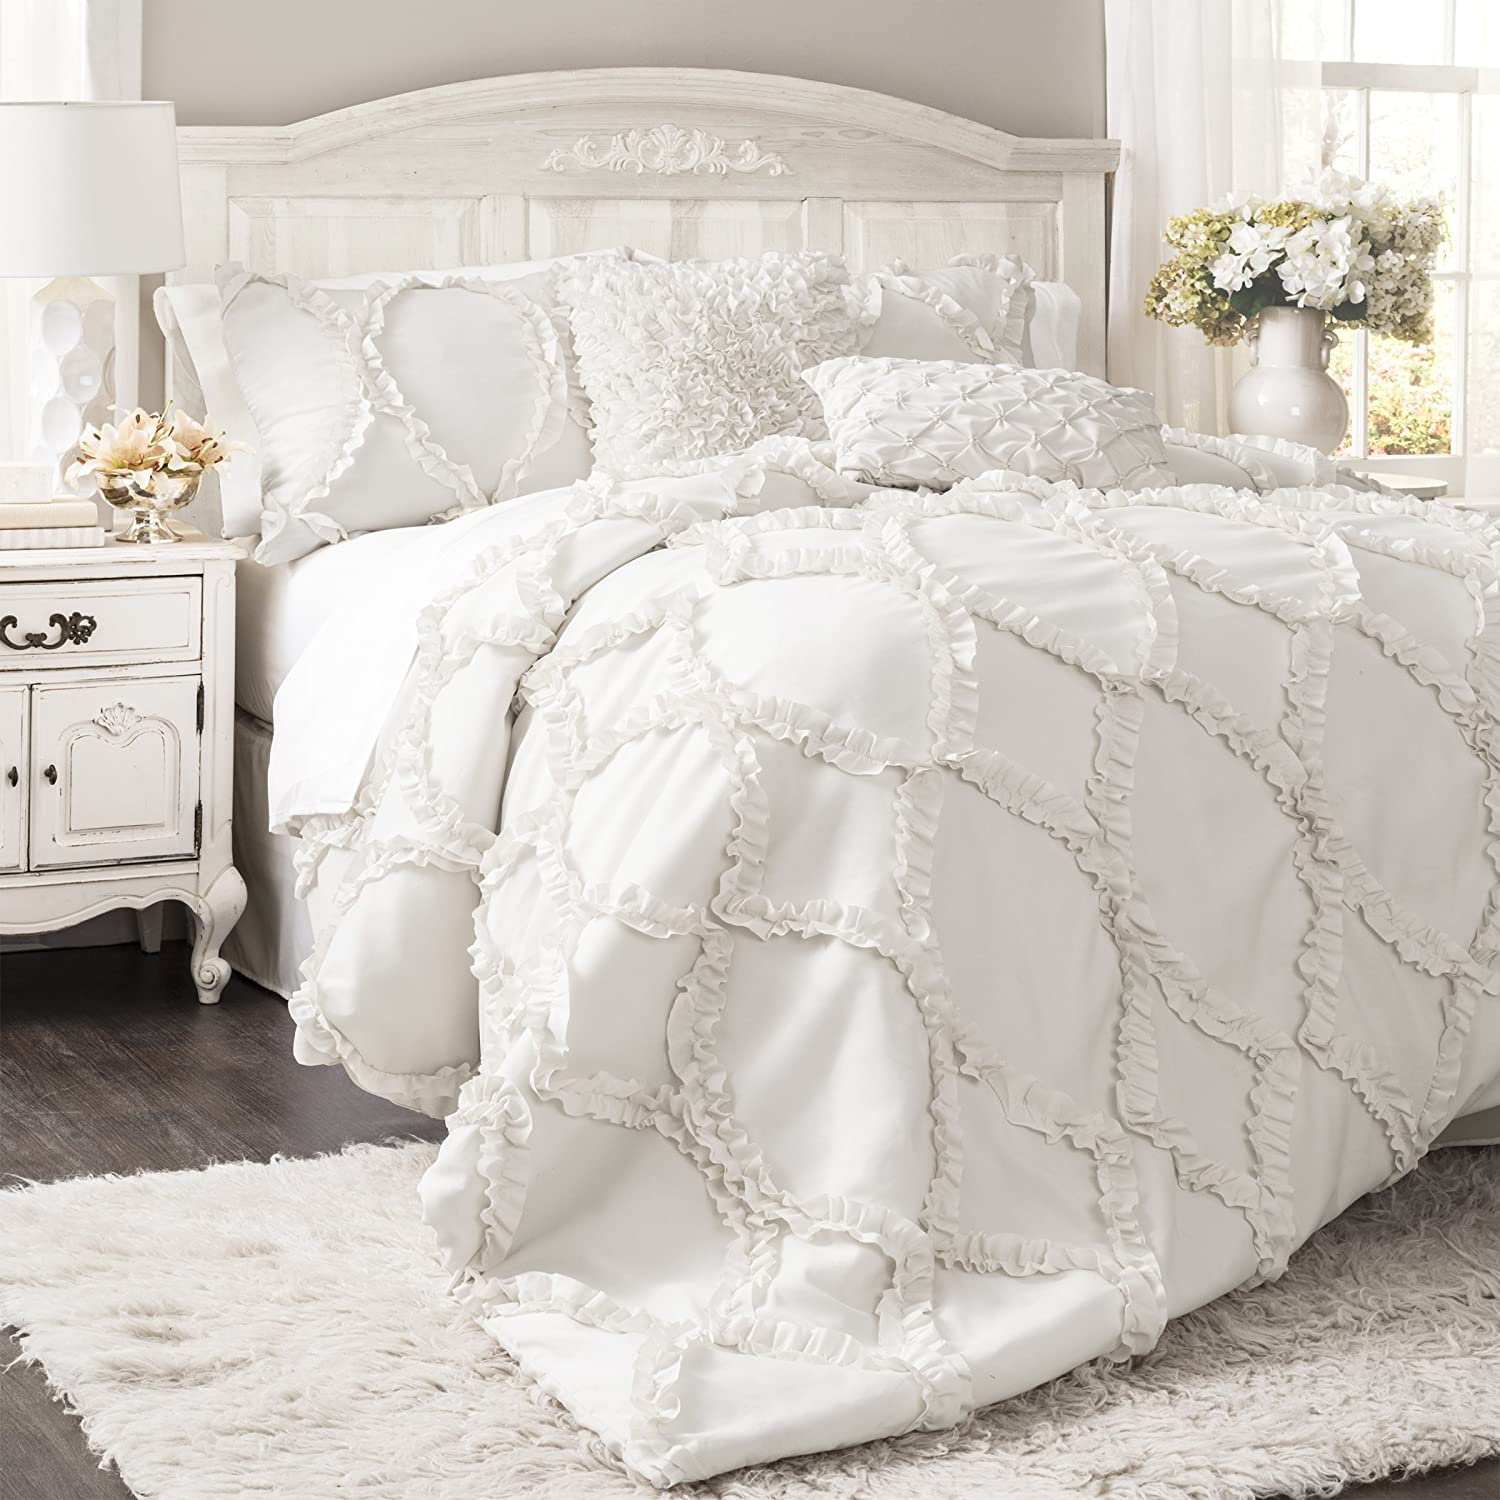 fashionable fitted queen flange white decorative piilowcase cheap comforter stylish brown fabric discount shams bedding originalviews standard bedskirt euro with sets downloadspermalink paisley quilt cotton sheet solid viewsdownloads